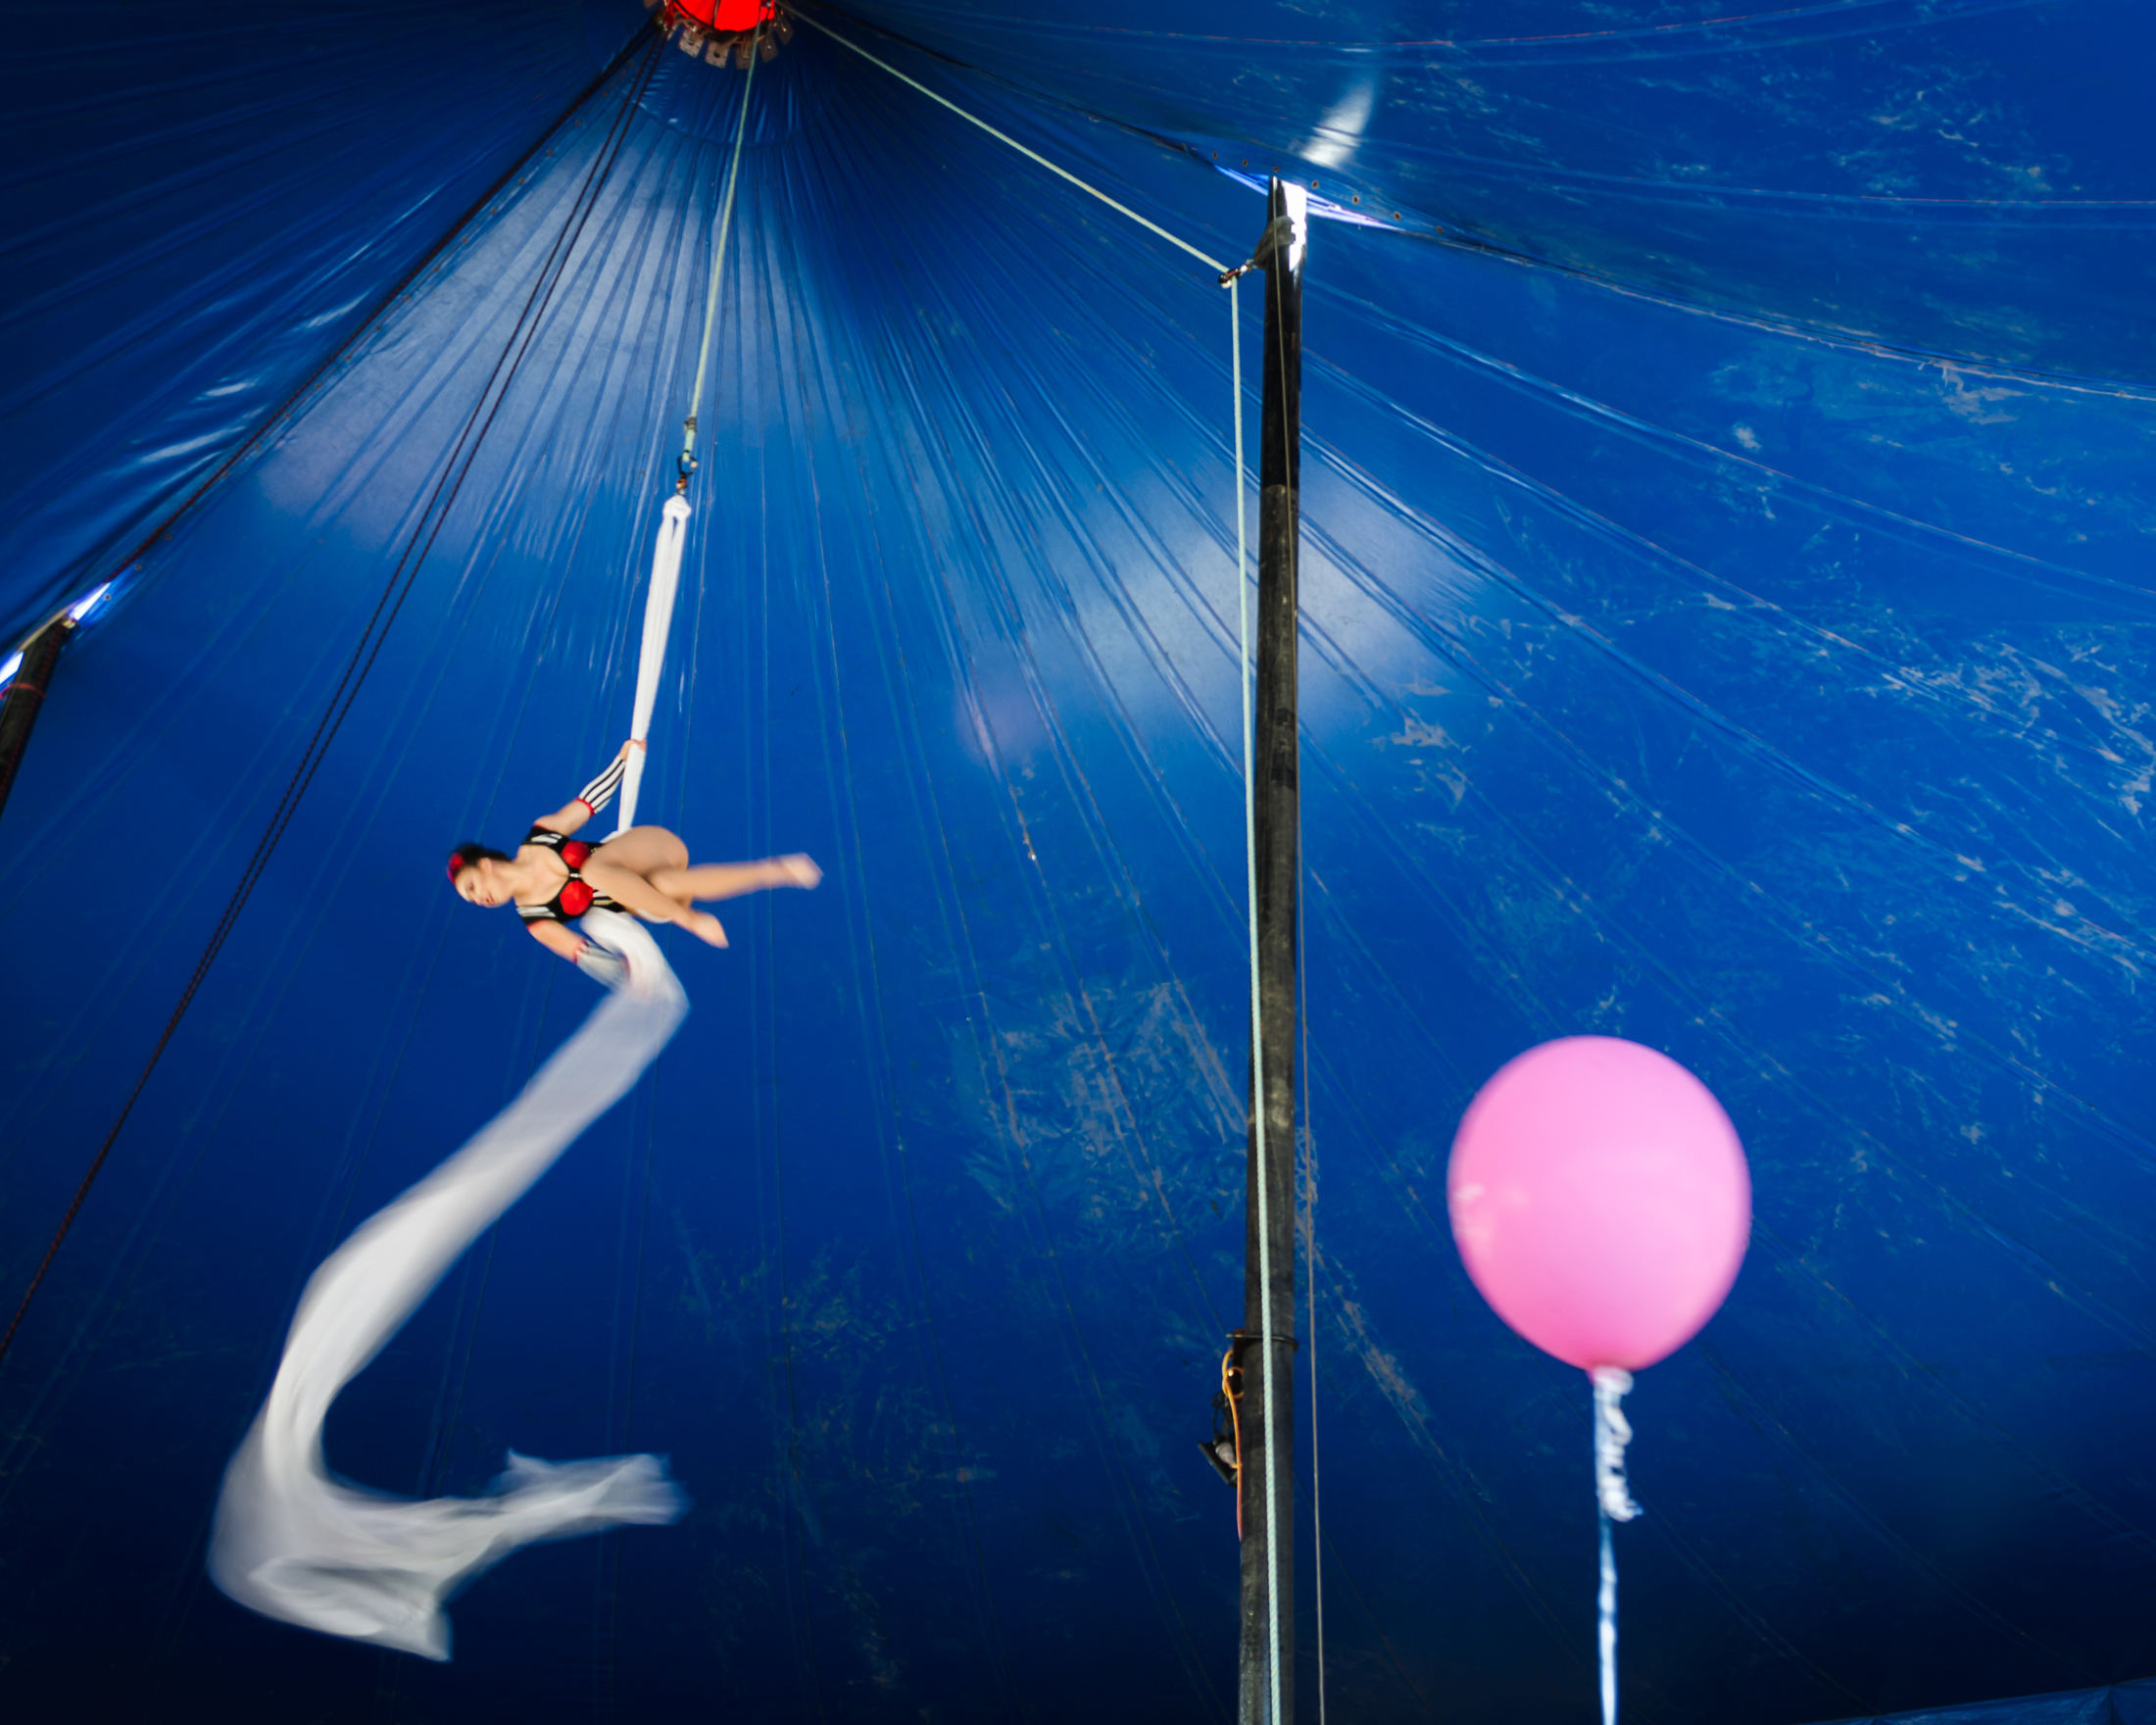 Spinning silks and balloon by Katy Bindels